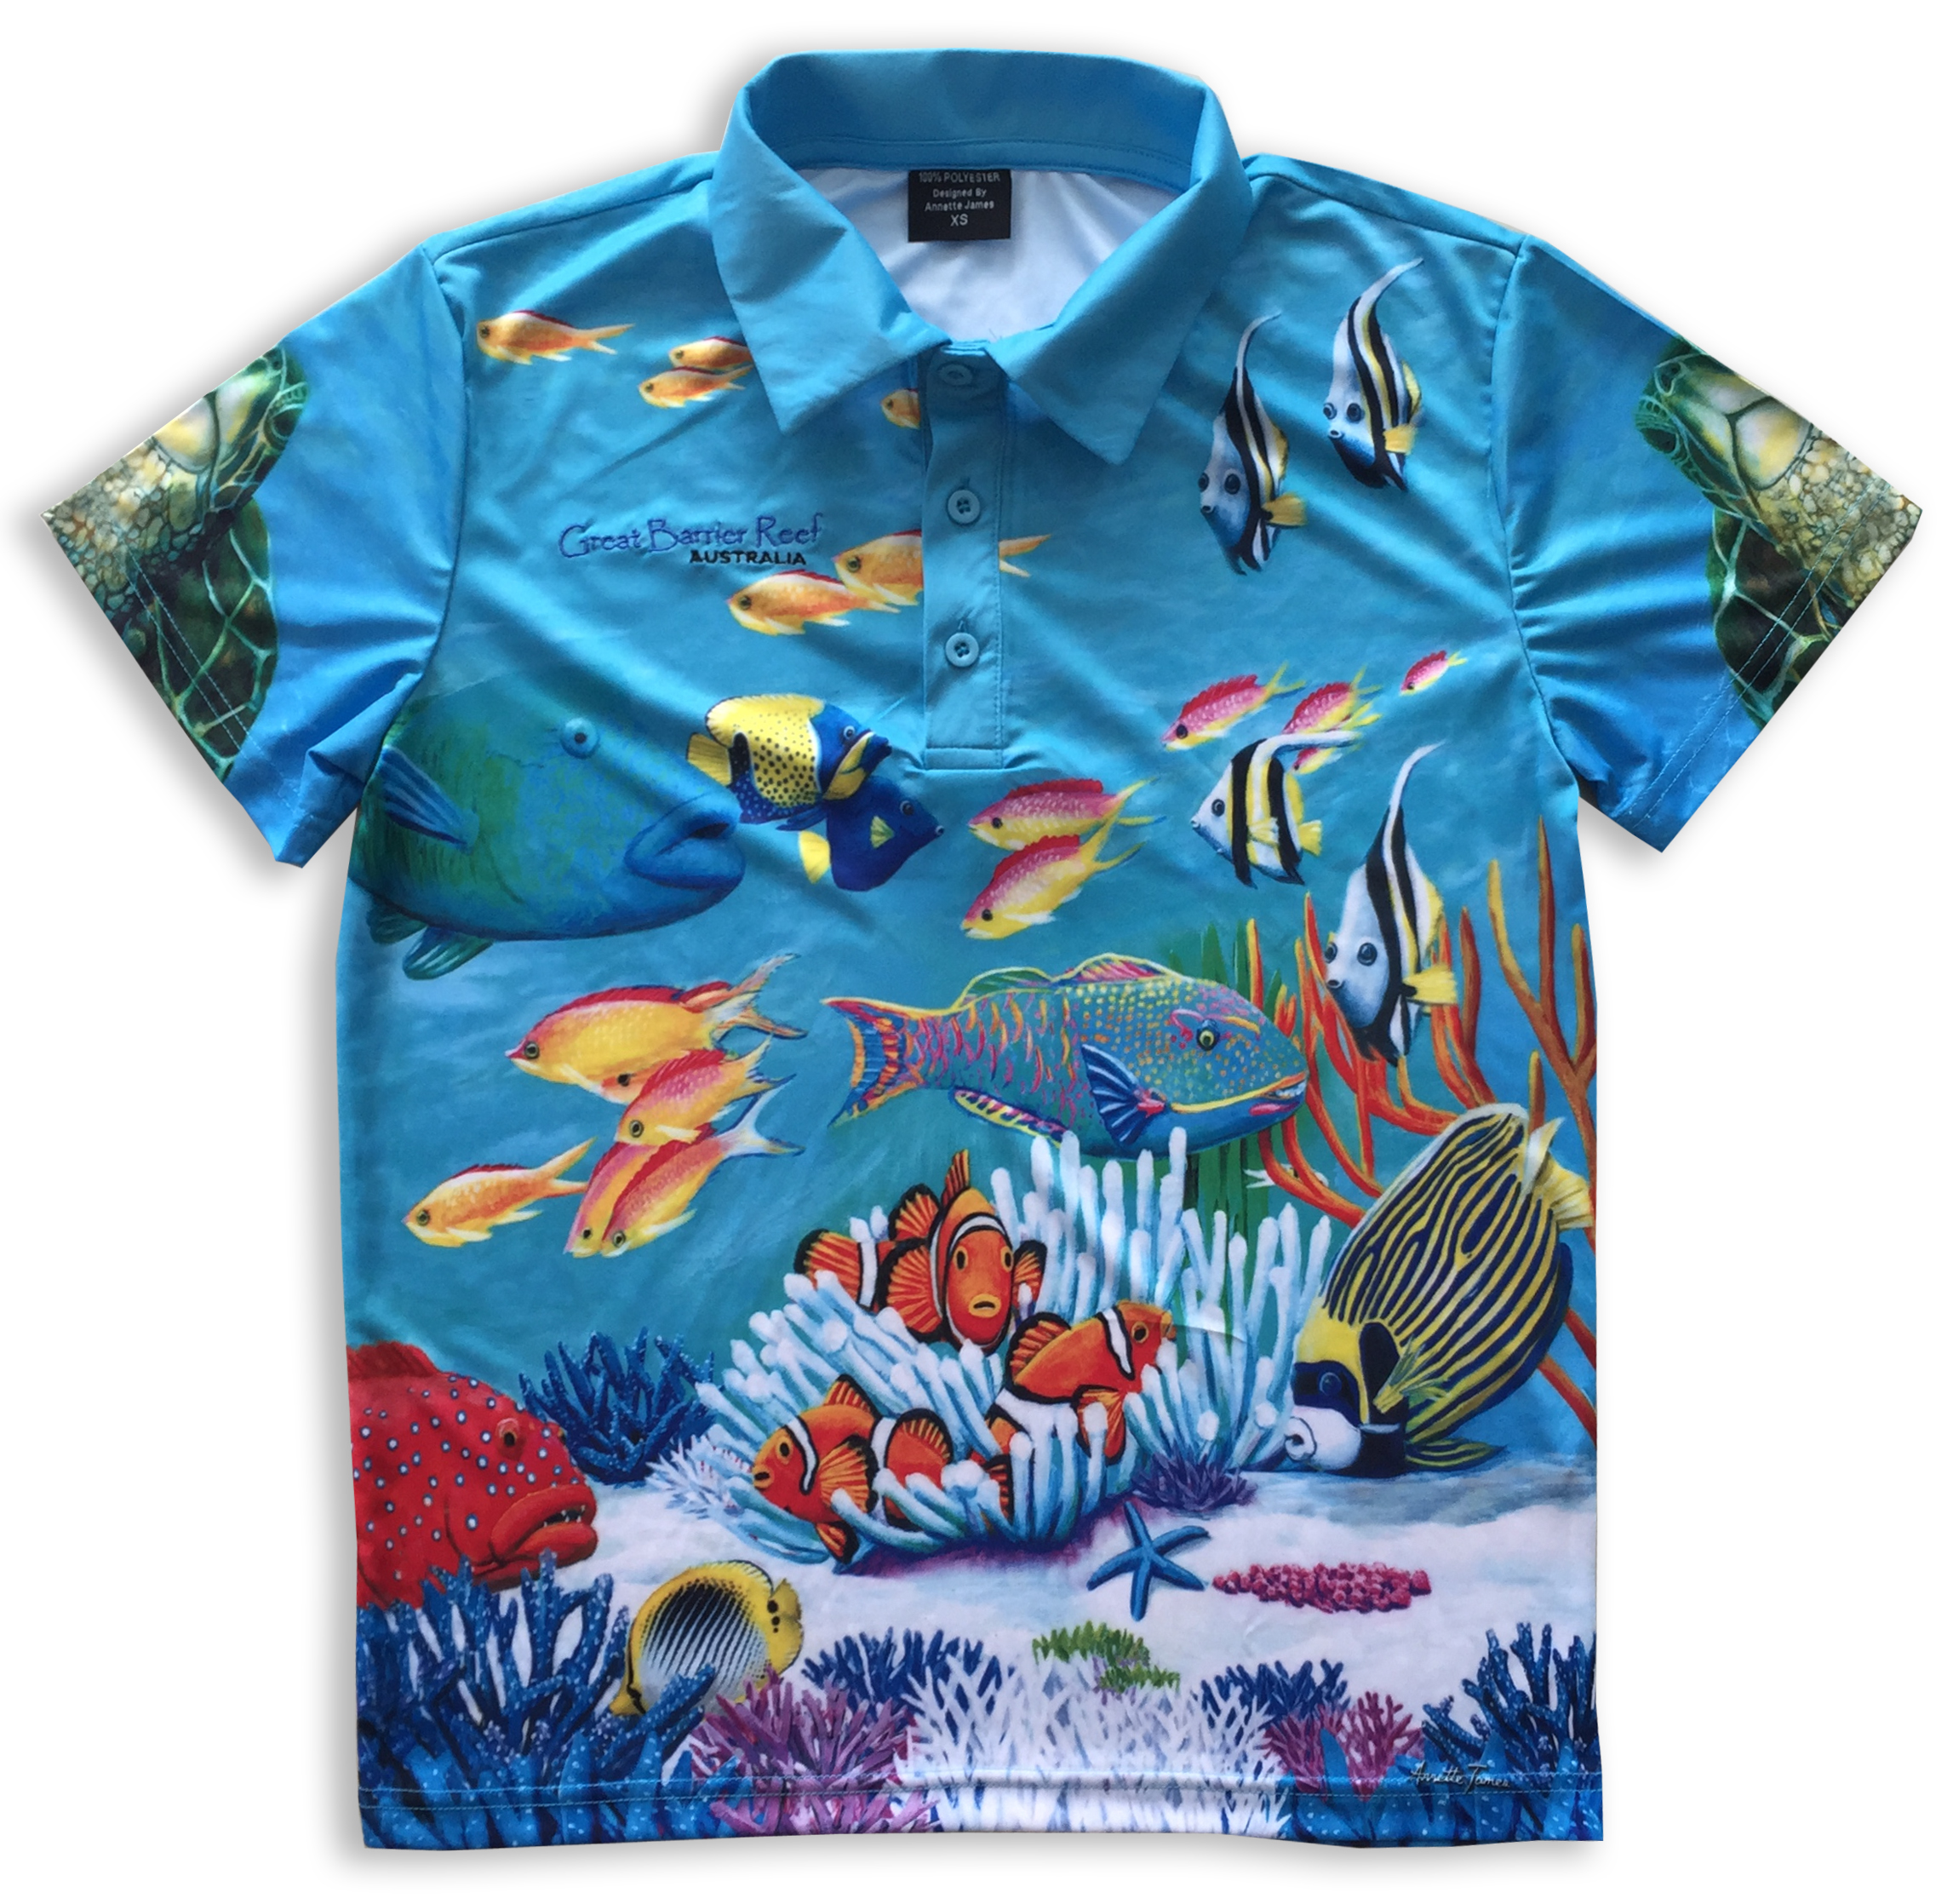 Great Barrier Reef Shirt